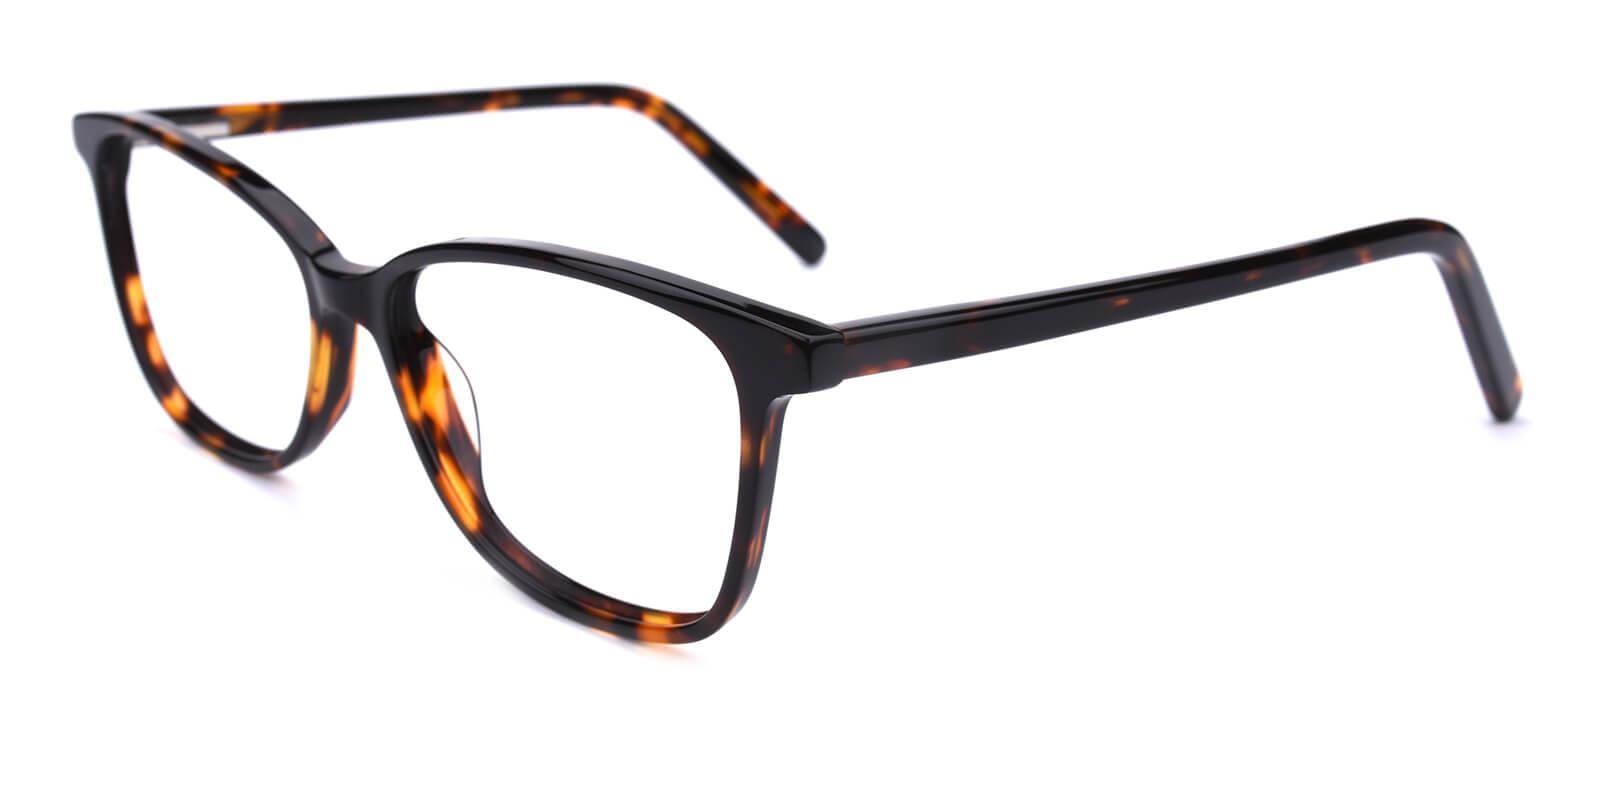 Believe-Tortoise-Square / Cat-Acetate-Eyeglasses-additional1